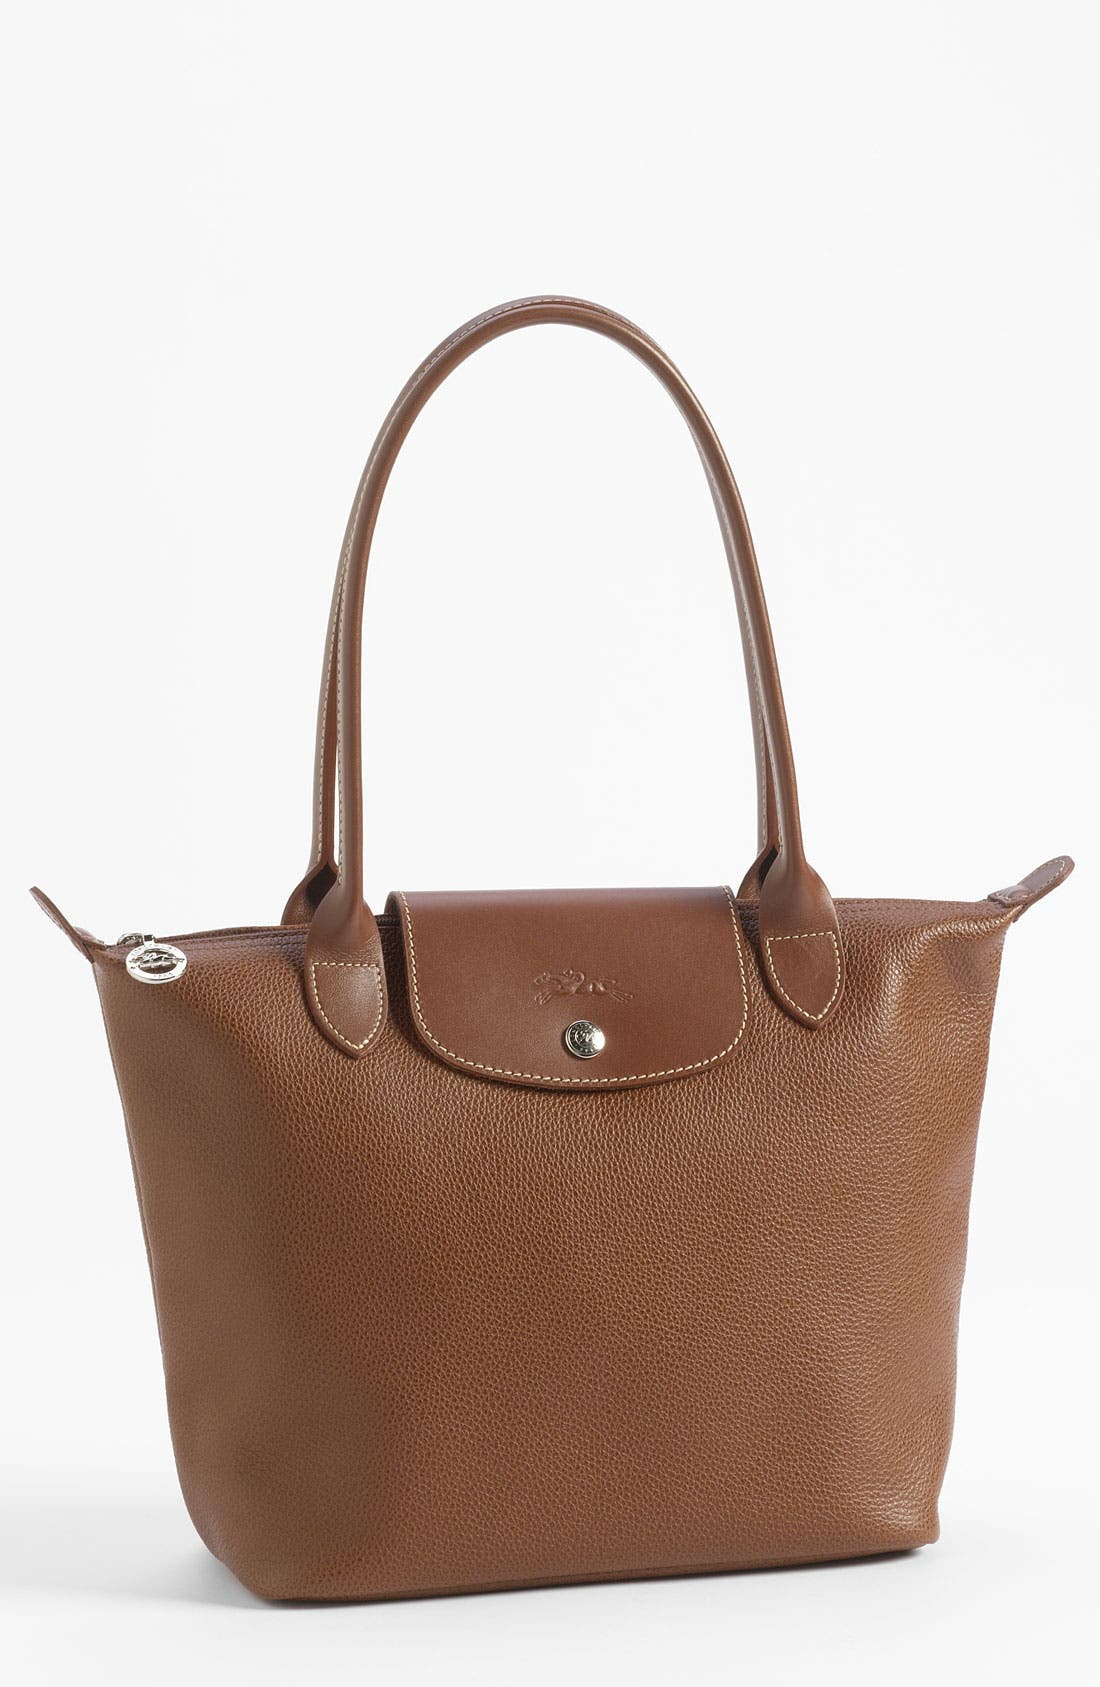 Alternate Image 1 Selected - Longchamp 'Veau  Fouloneé' Shoulder Bag (Nordstrom Exclusive)